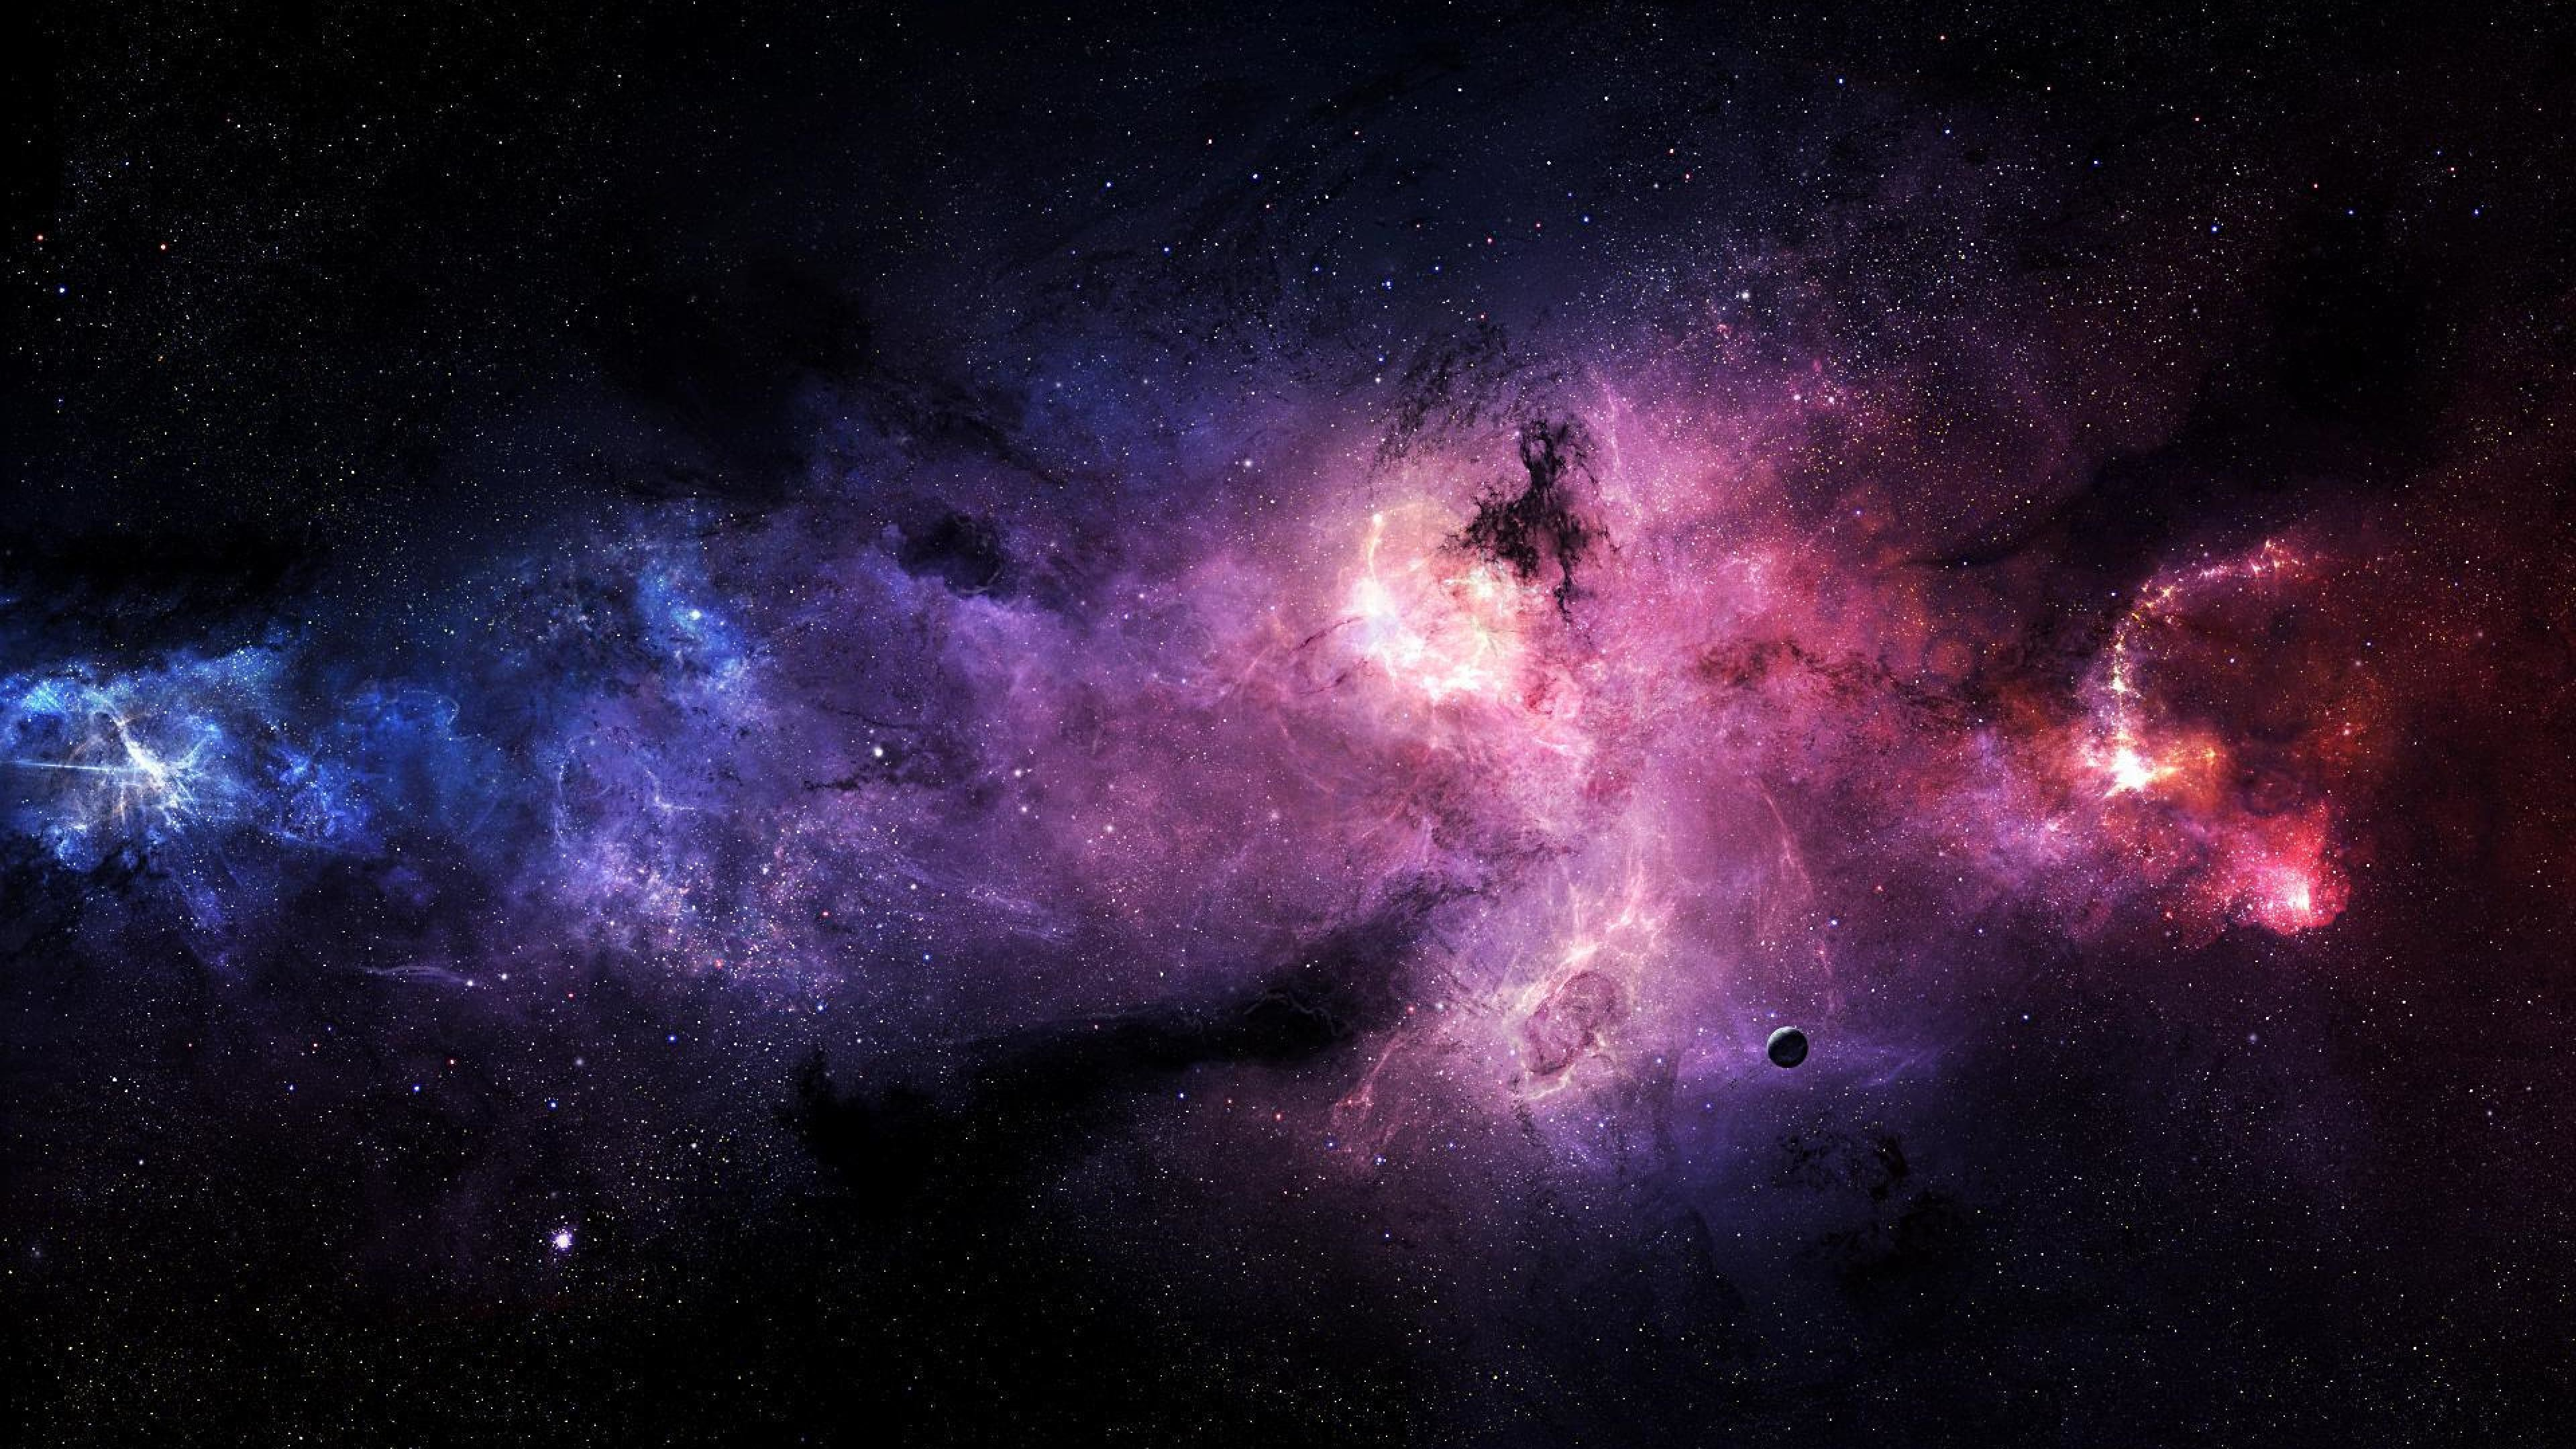 space wallpapers high resolution (59+ images)